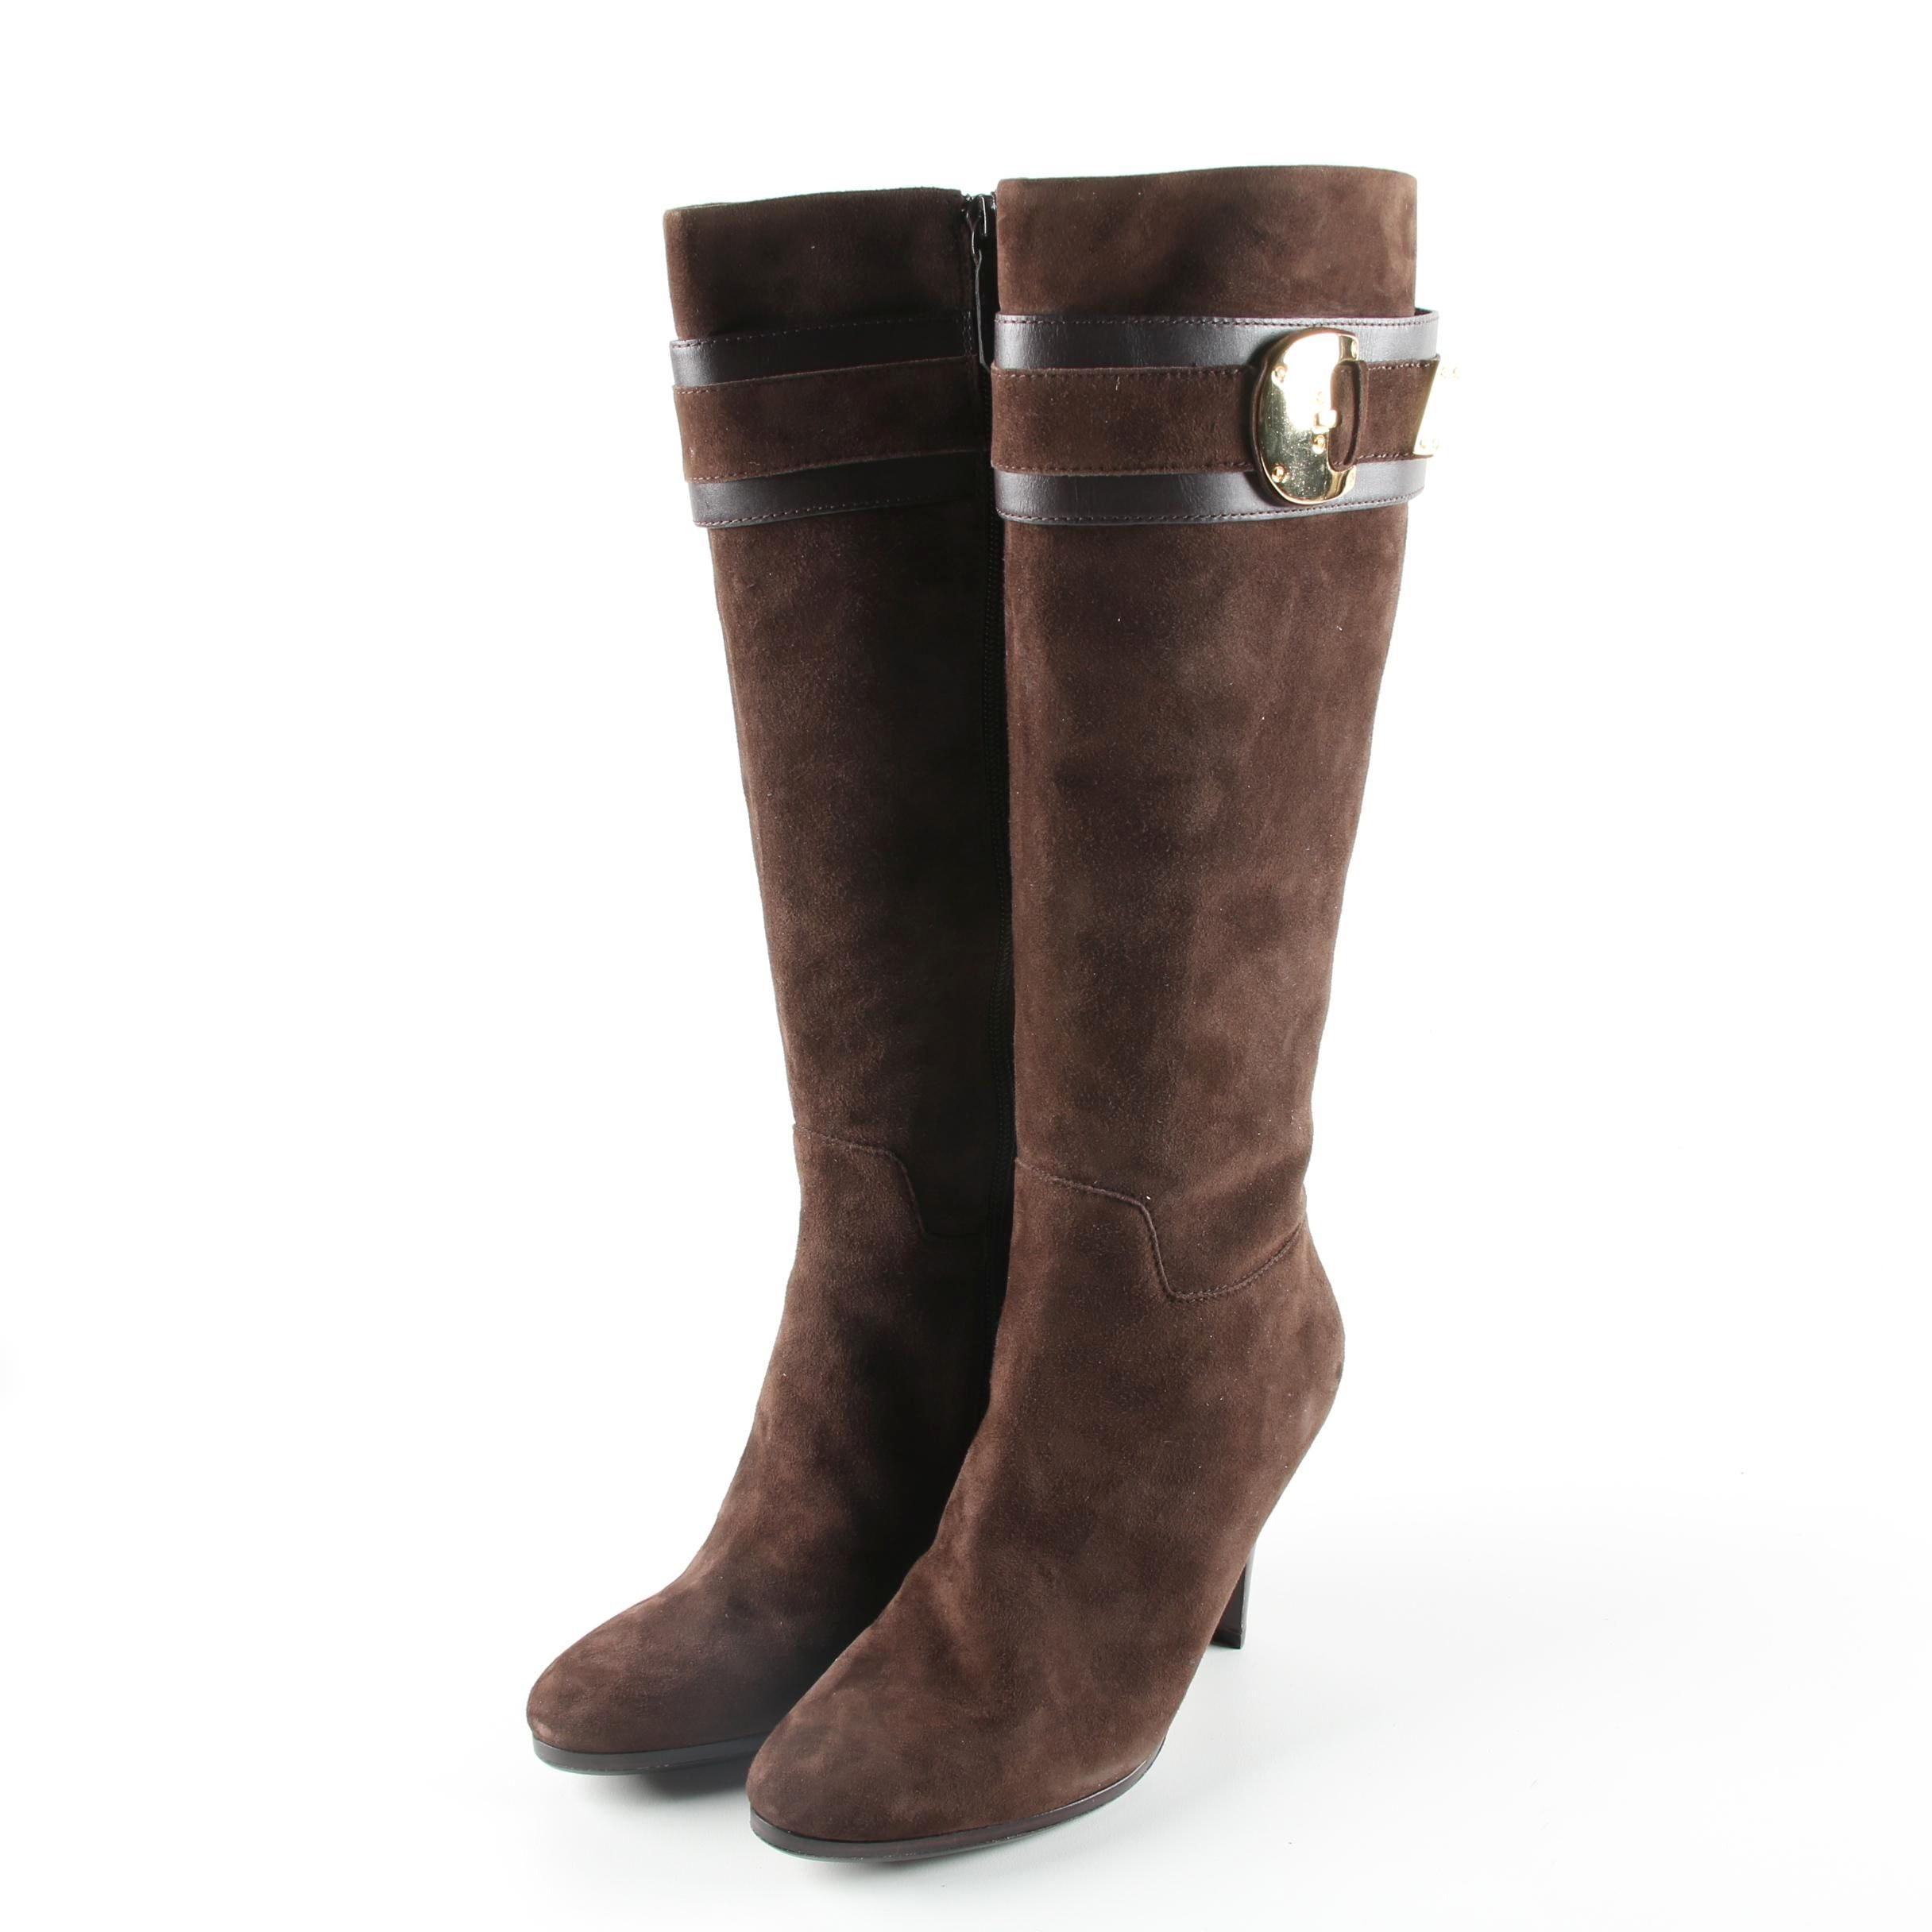 Cole Haan by Nike Air Brown Suede High Heel Boots